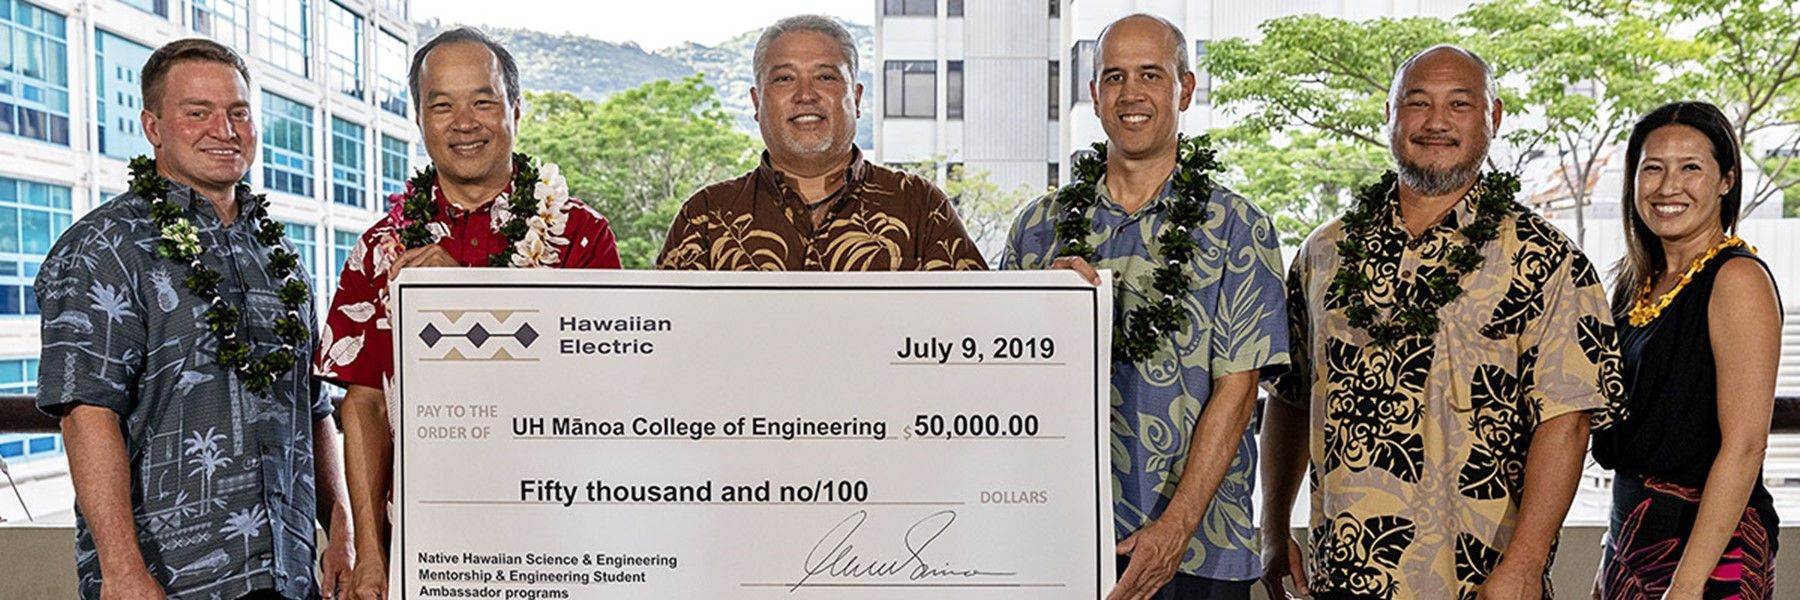 Hawaiian Electric Supports Science And Engineering Students With $50,000 Gift